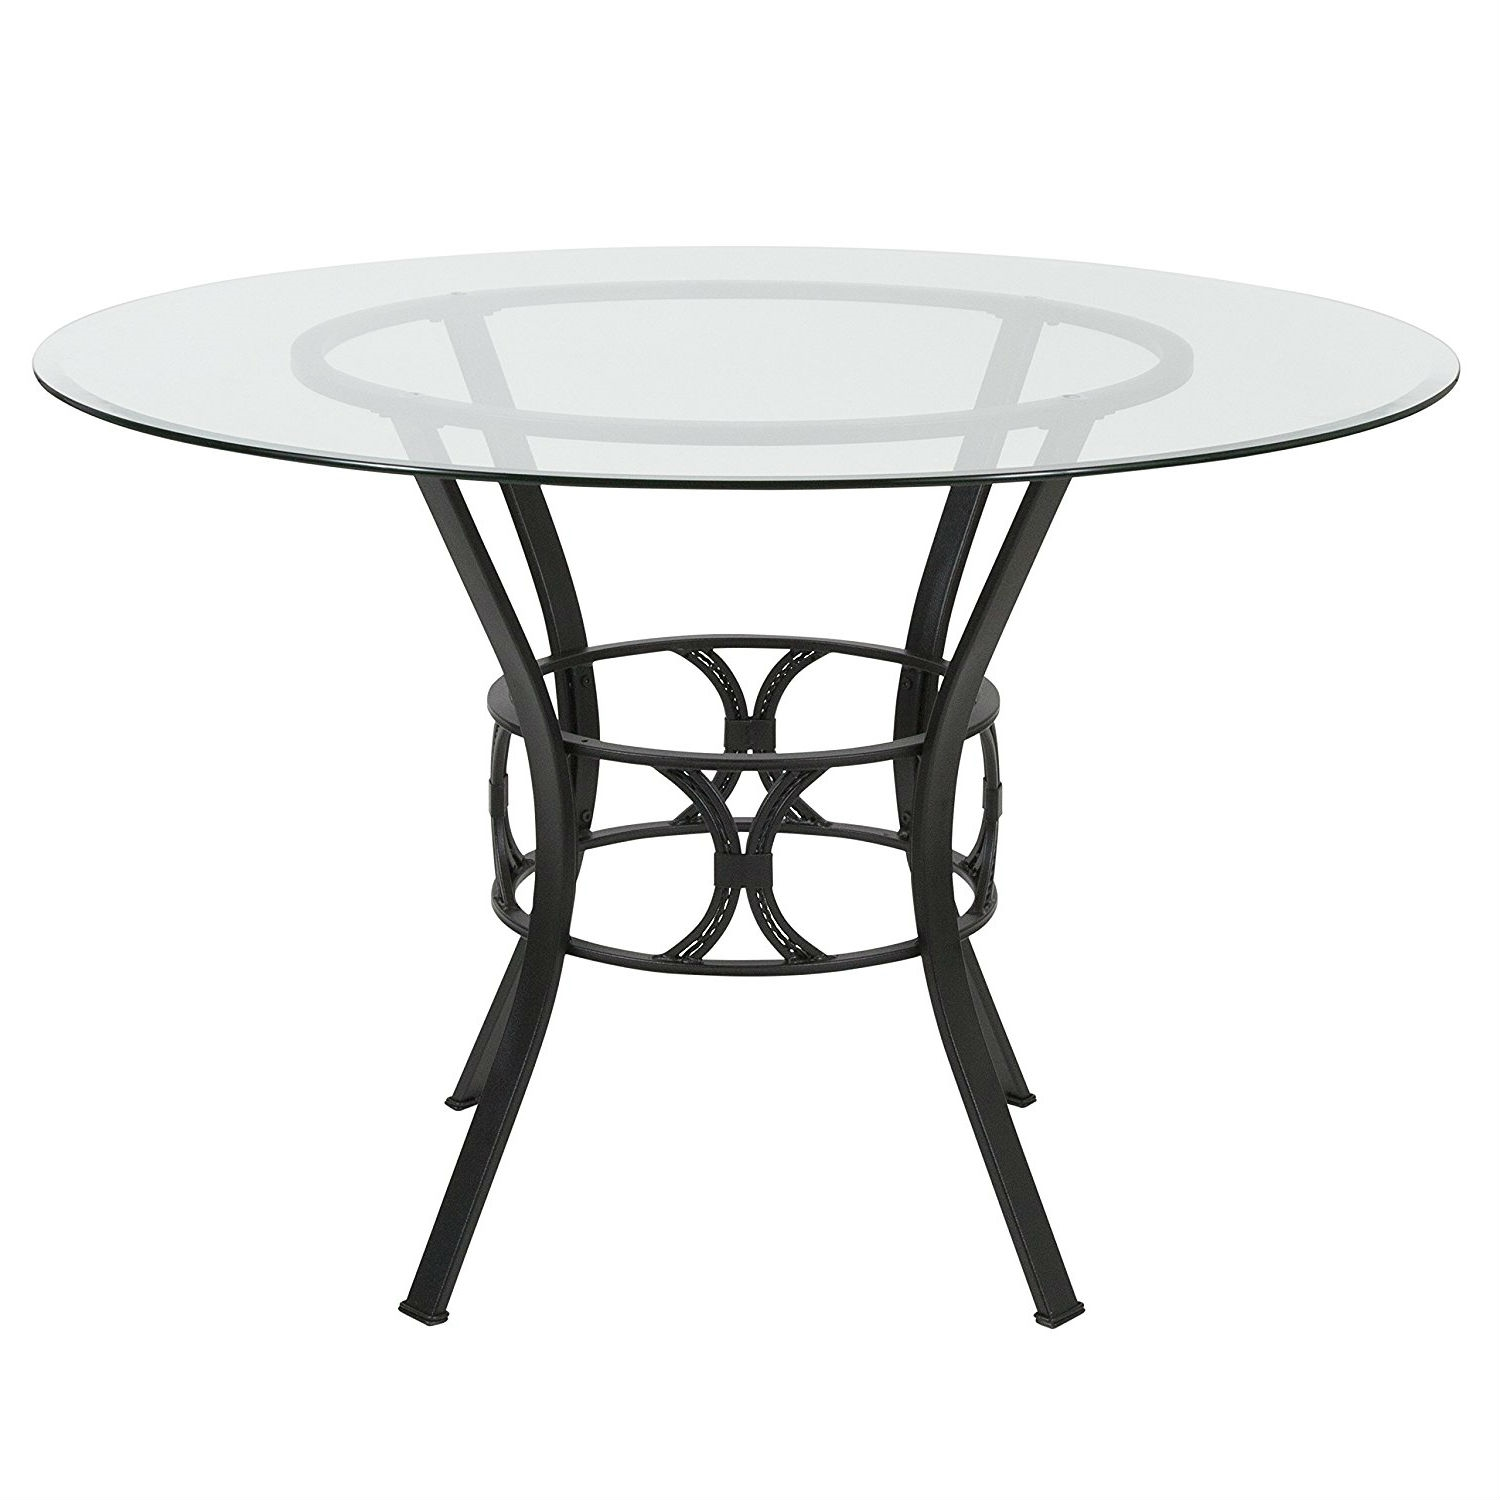 Contemporary 45-inch Round Glass Dining Table with Black Metal Frame | FastFurnishings.com